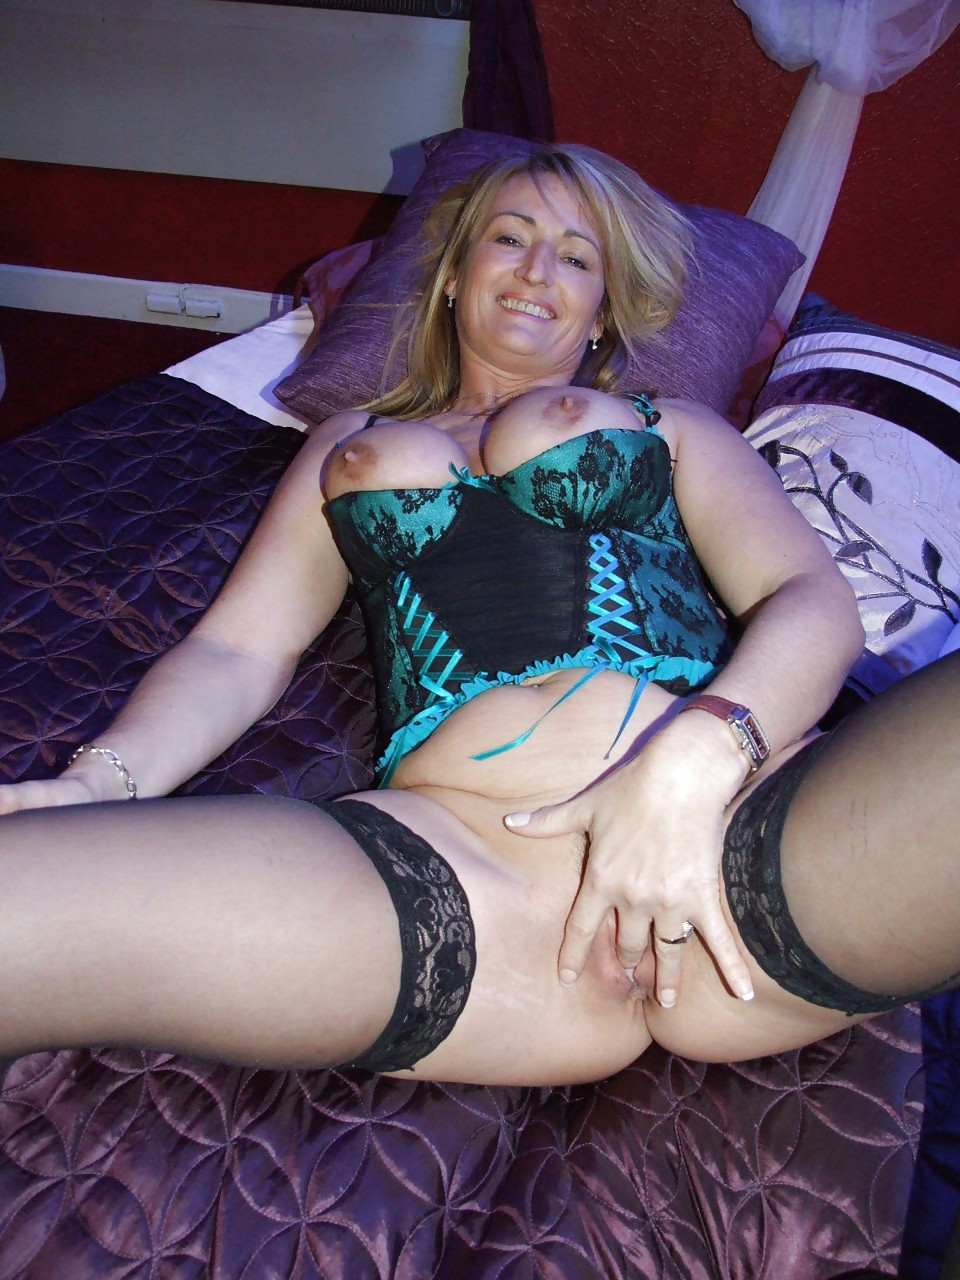 first time getting fuck a strap on tmb Blonde Milf Sexymilf Undressing Closeup Perfecttits Blackandwhite Hardnipples NecklaceBetweenTits